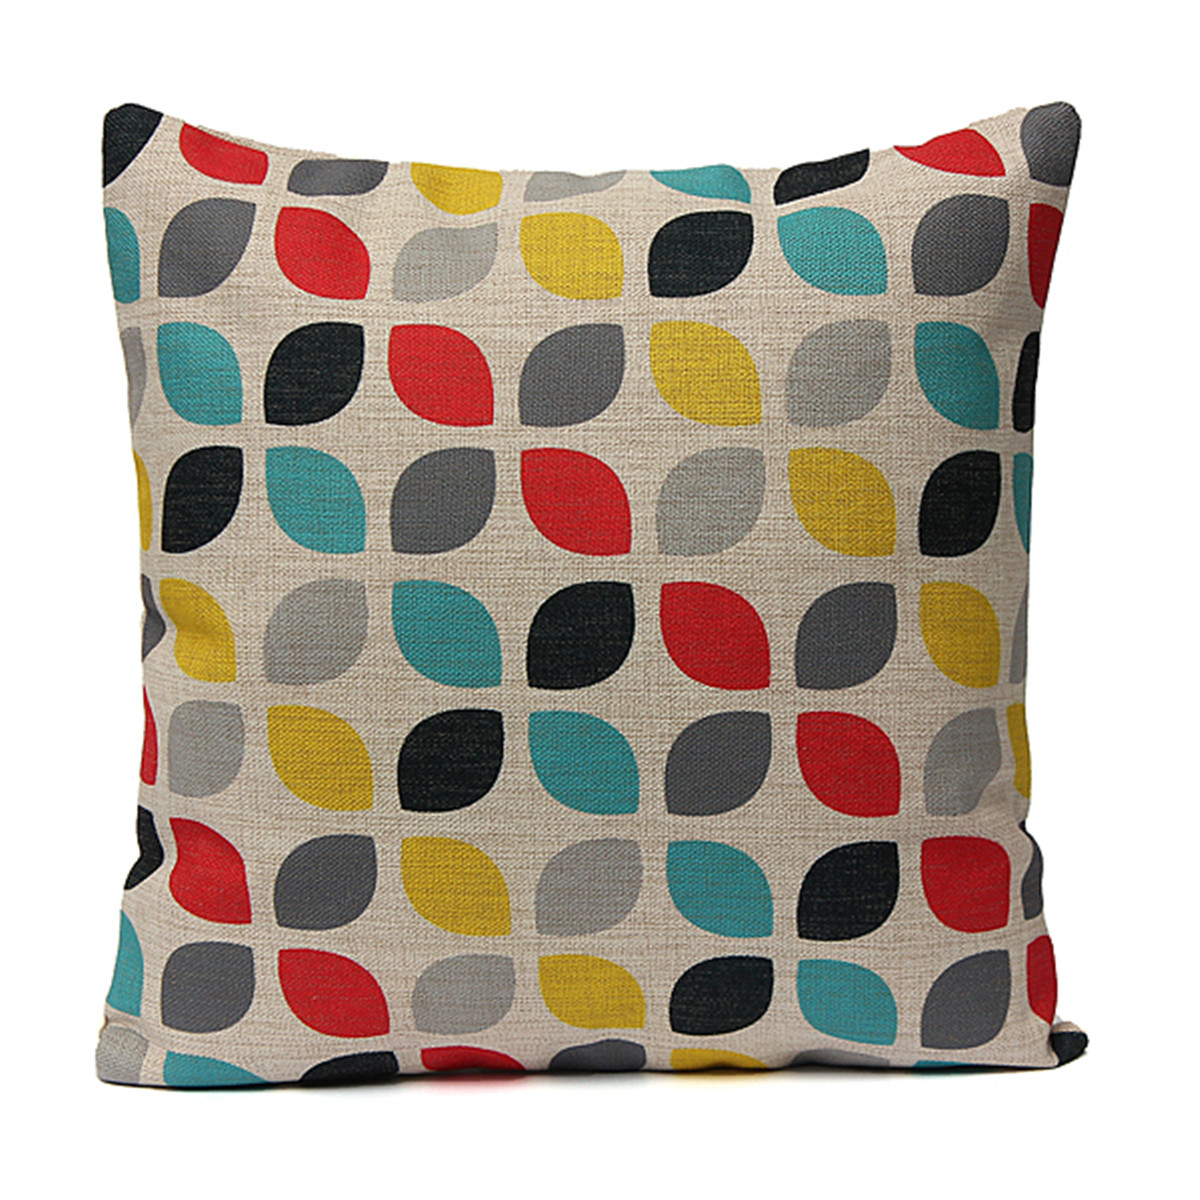 cushions collection on ebay